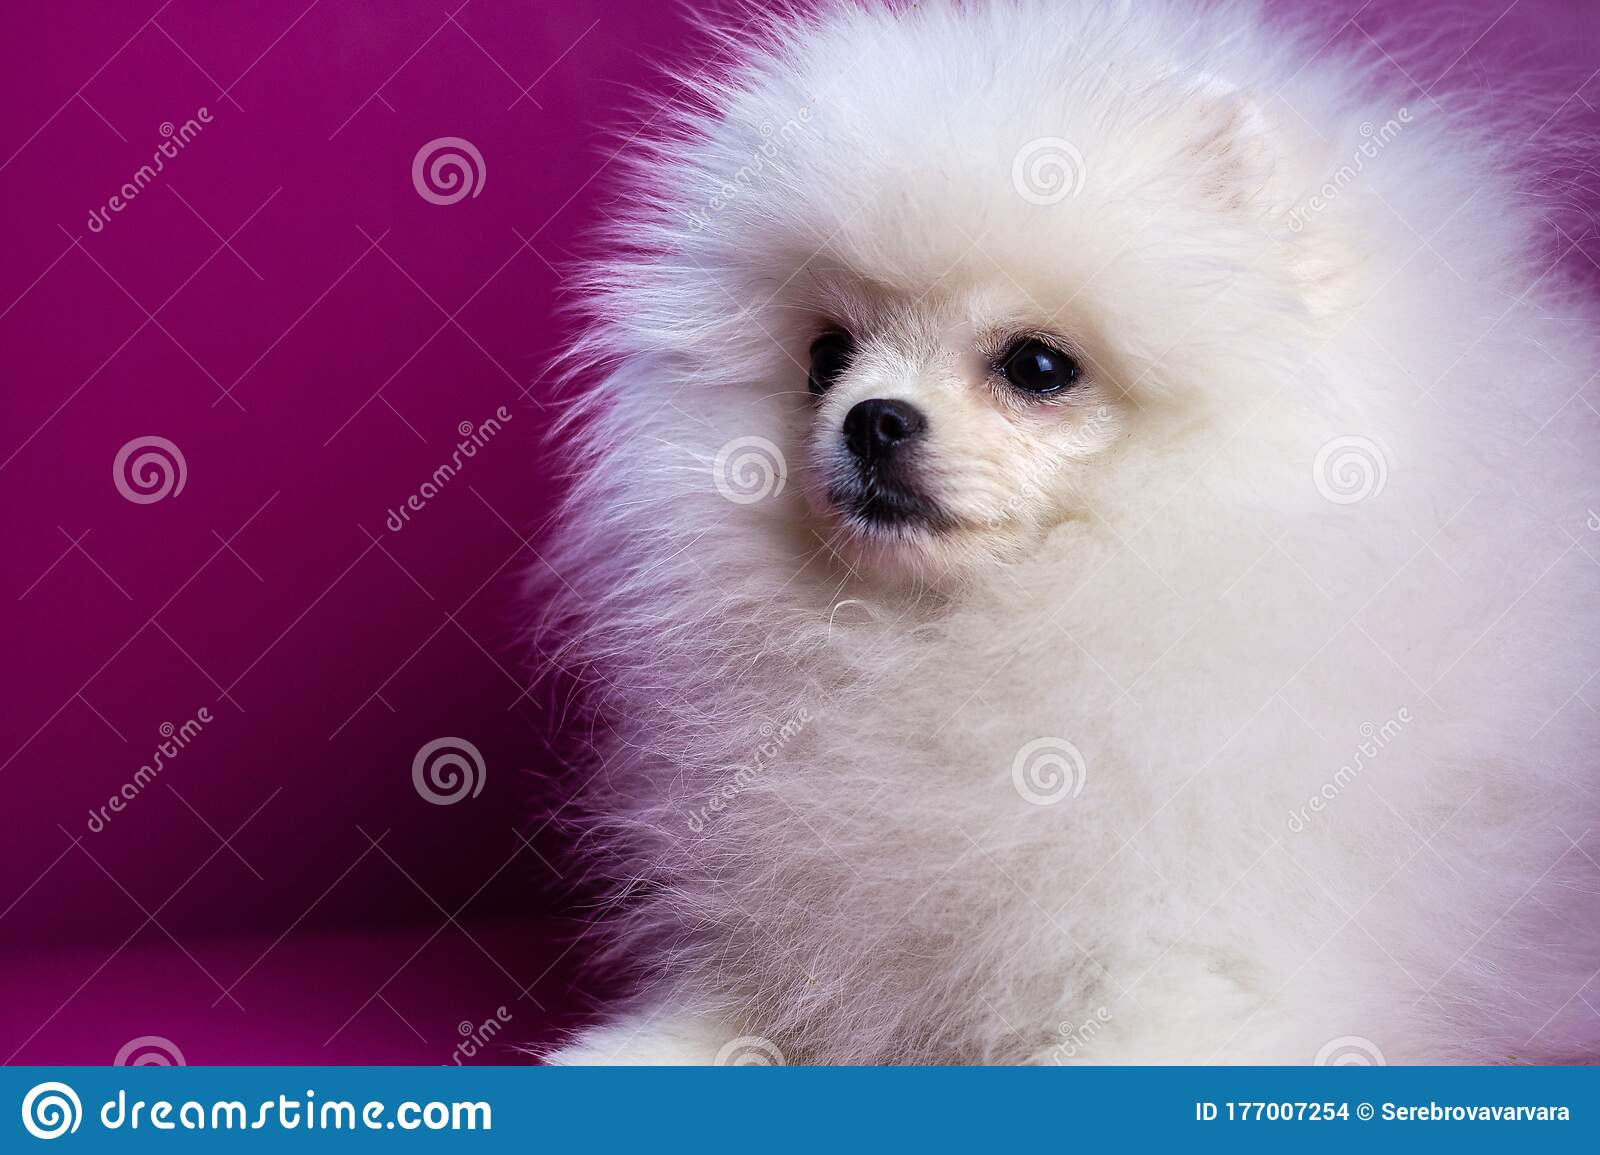 Muzzle Of A Dog A White Pomeranian Puppy Close Up On A Bright Pink Background Looks Away Beautiful White Hair Stock Photo Image Of Cute Adorable 177007254